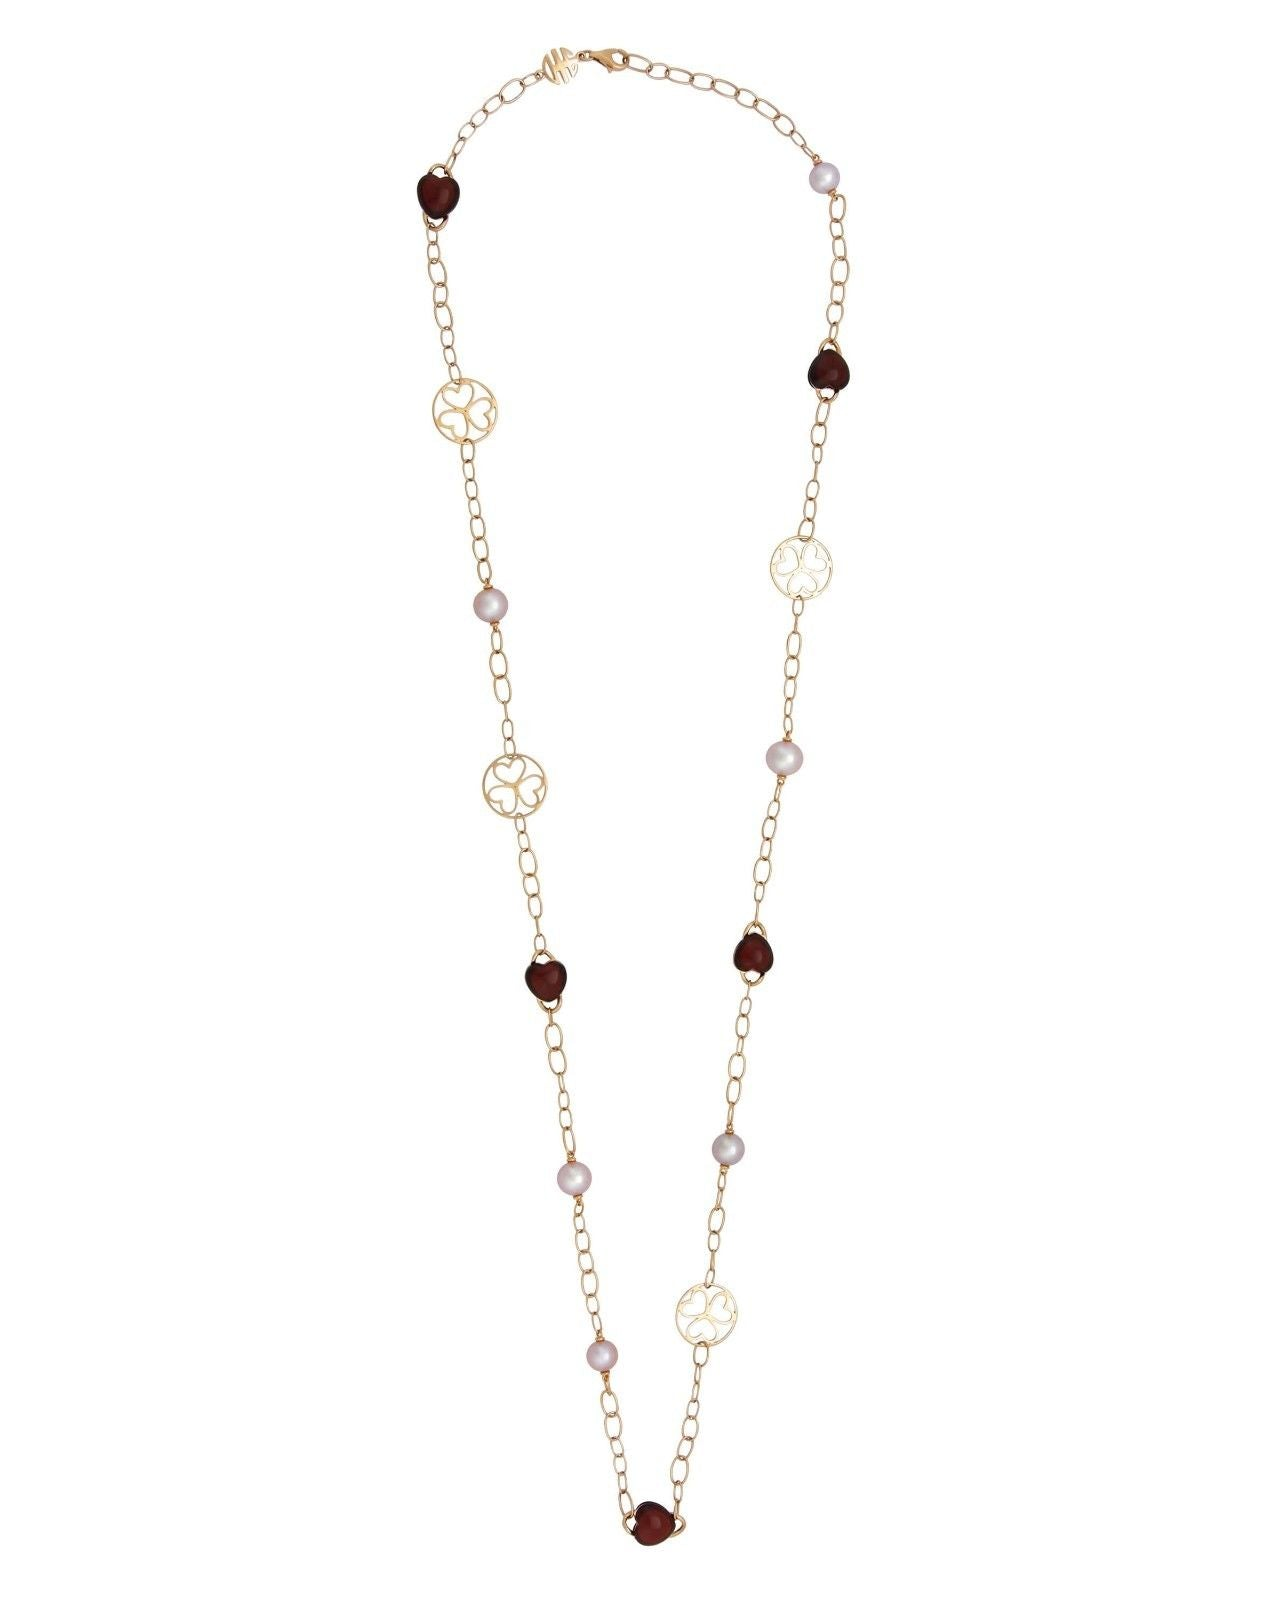 Mimi Milano Necklace In 18K Rose Gold, Garnet Violet Pearls C287R3G